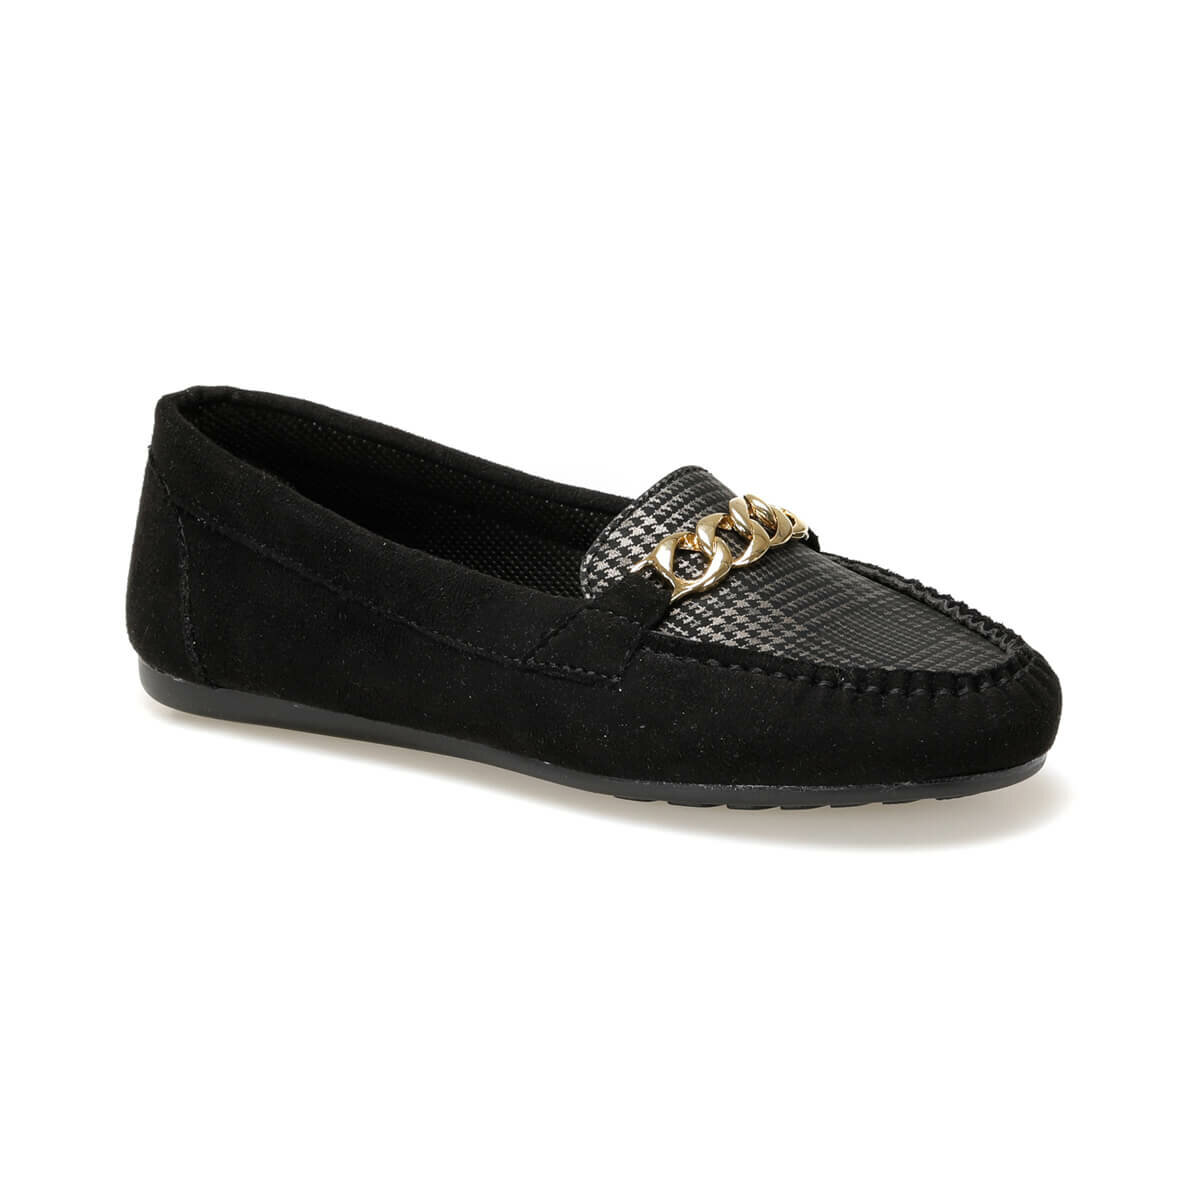 FLO DW19006E Black Women Loafer Shoes Miss F